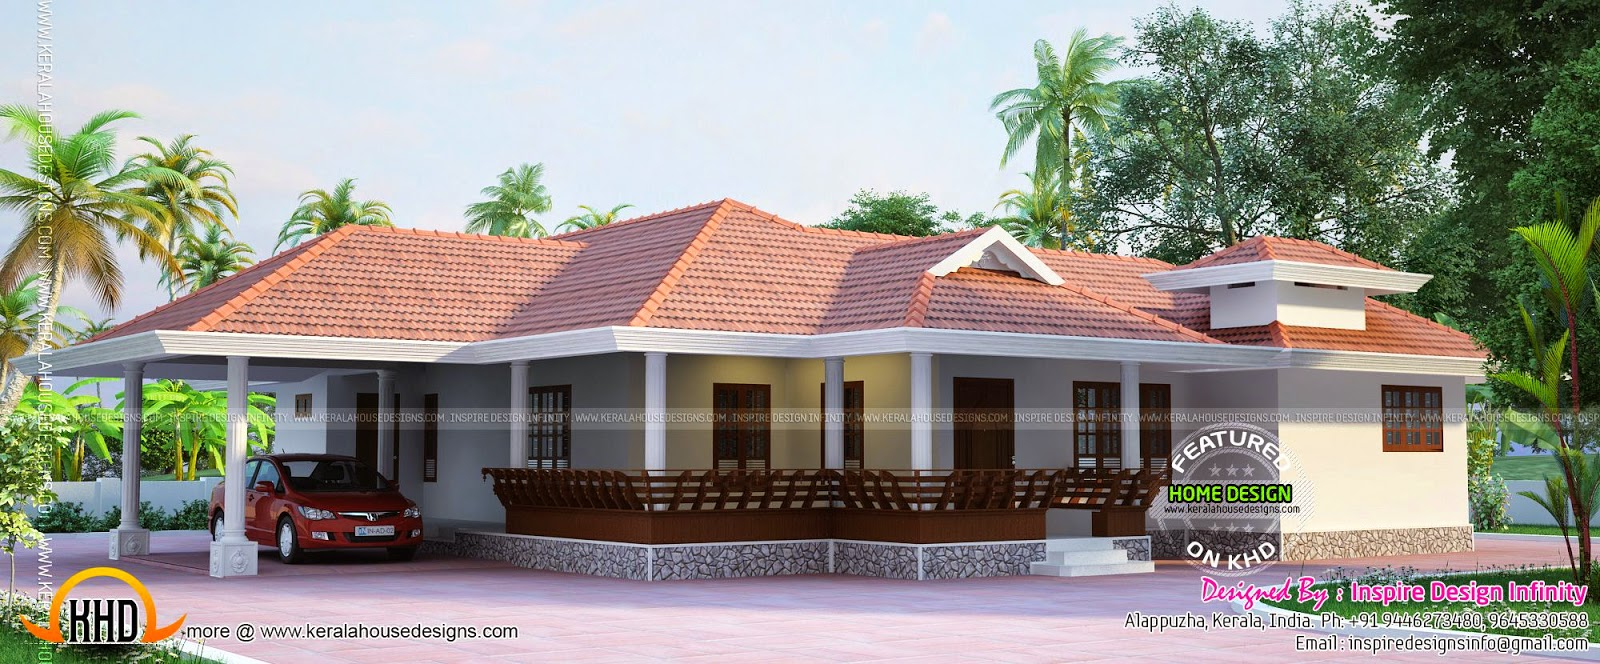 Kerala model house exterior kerala home design and floor plans - Kerala exterior model homes ...